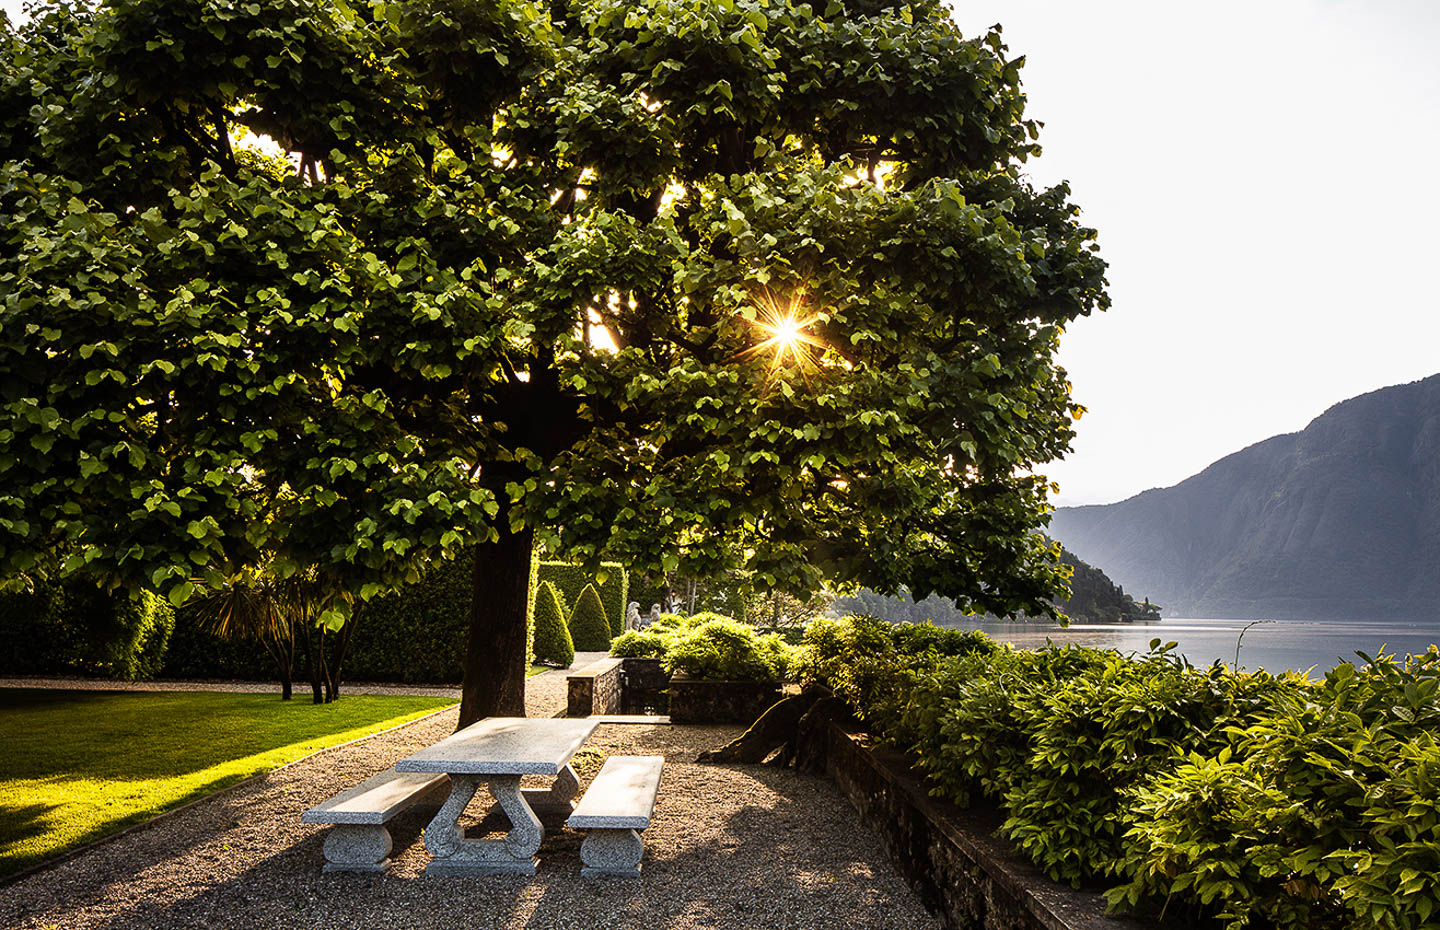 Villa Balbiano luxury property Lake Como Italy best dinner area al fresco Italian food wine exclusive table settings private dinner chef